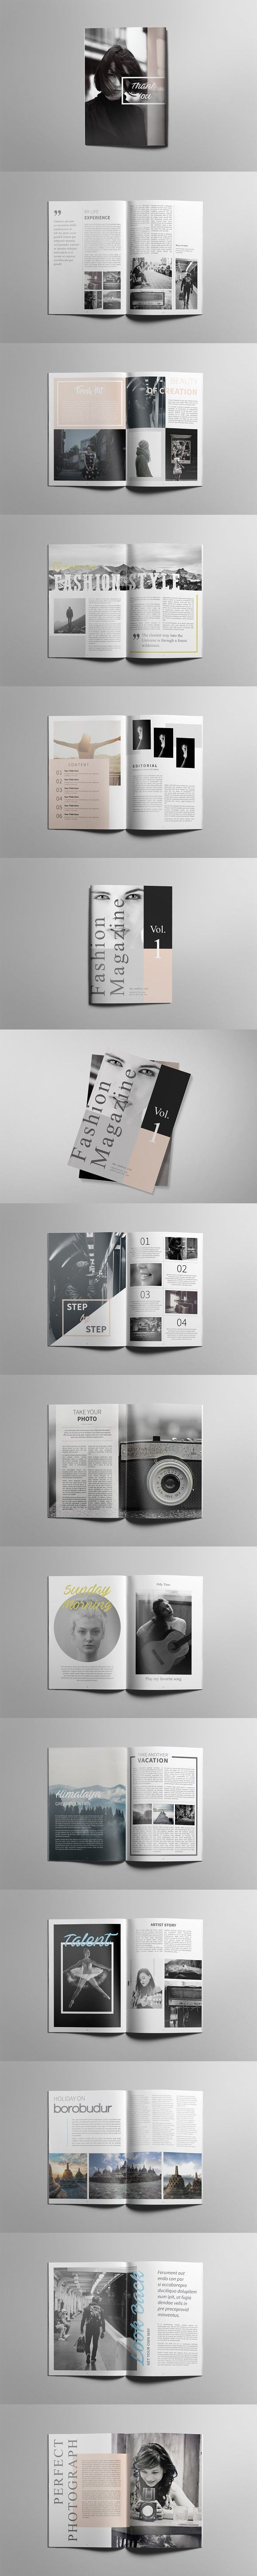 Simple Magazine Template #layout